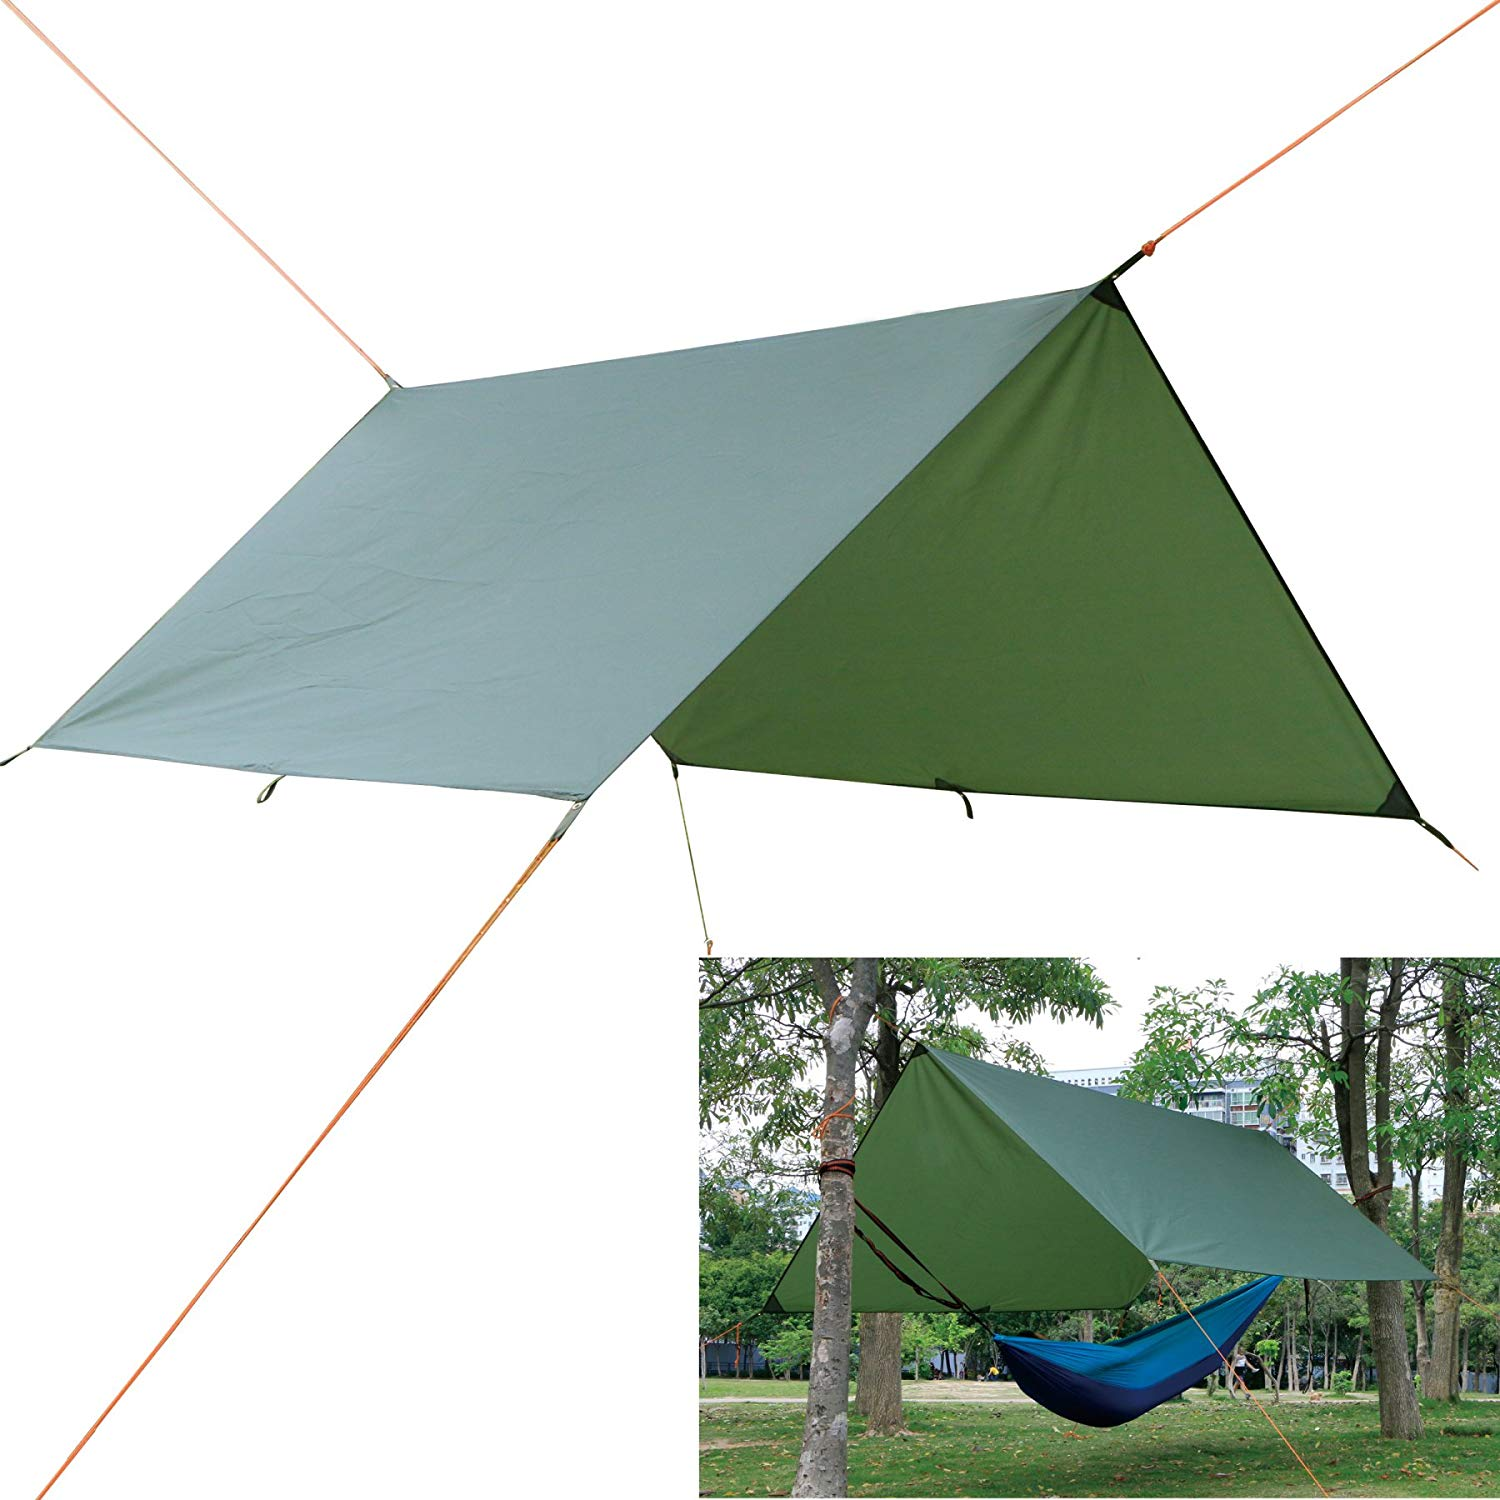 Autfit Hammock Rain Fly Waterproof Tent Tarp for Camping Backpacking and Survival Gear, Lightweight Ripstop Nylon and Aluminium Alloy Stakes